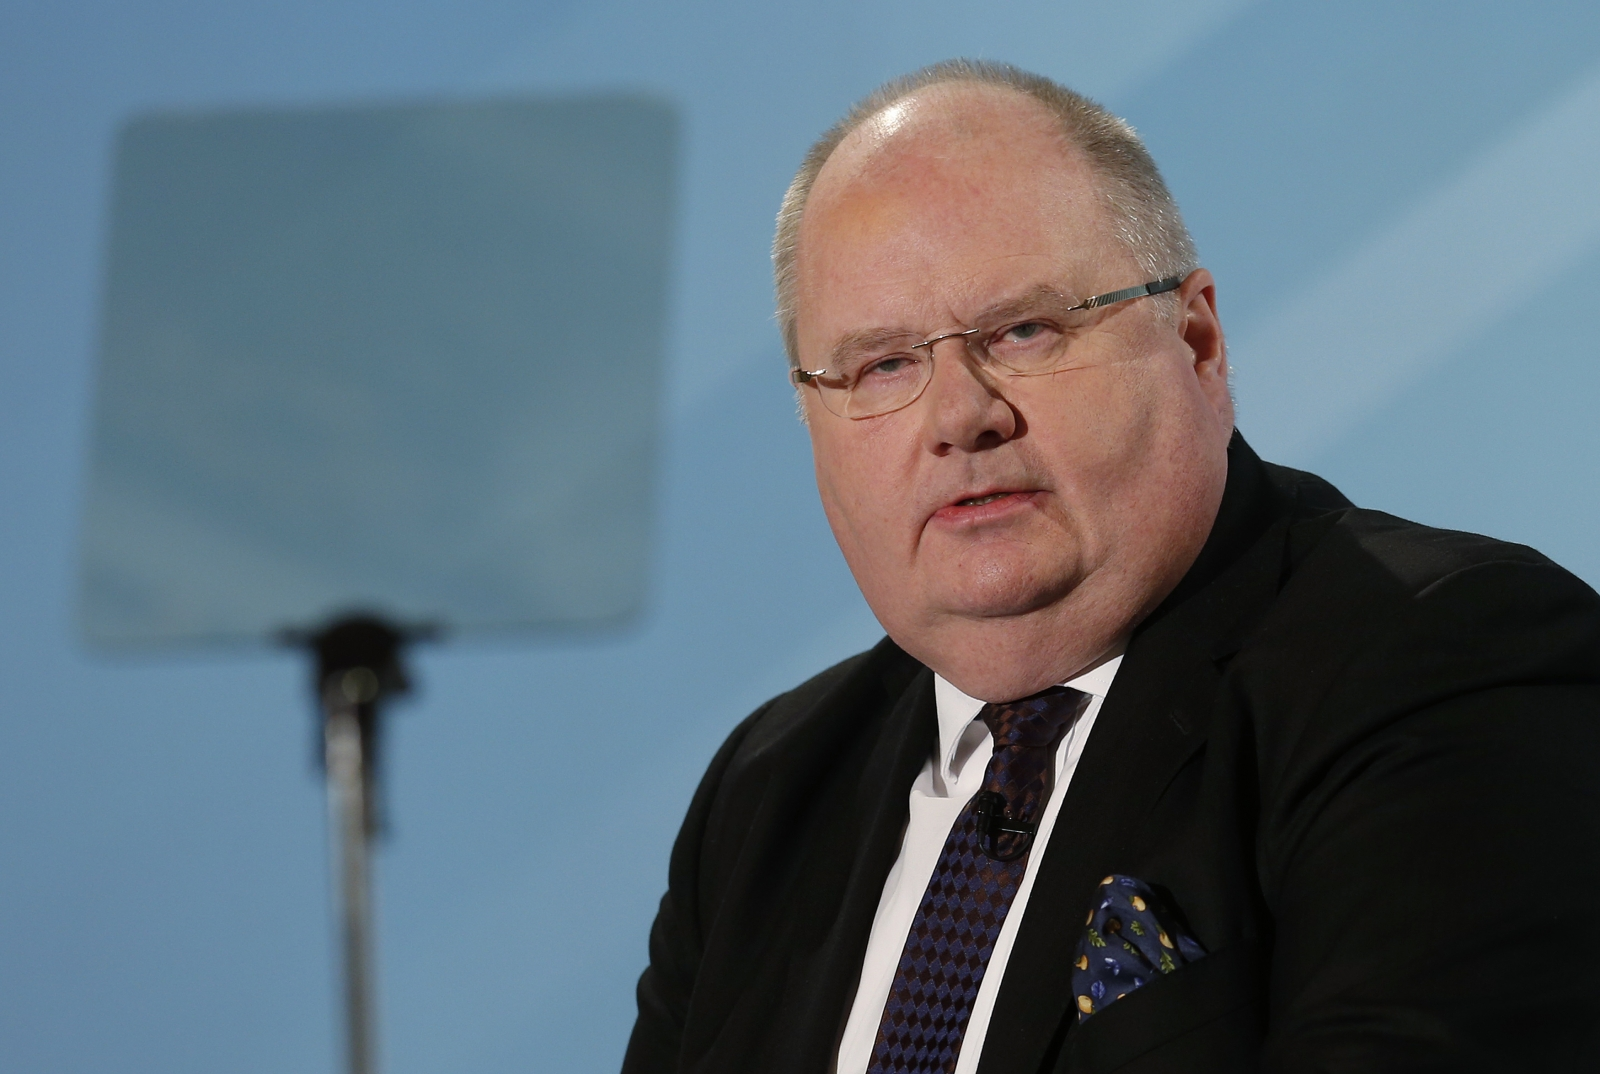 Eric Pickles